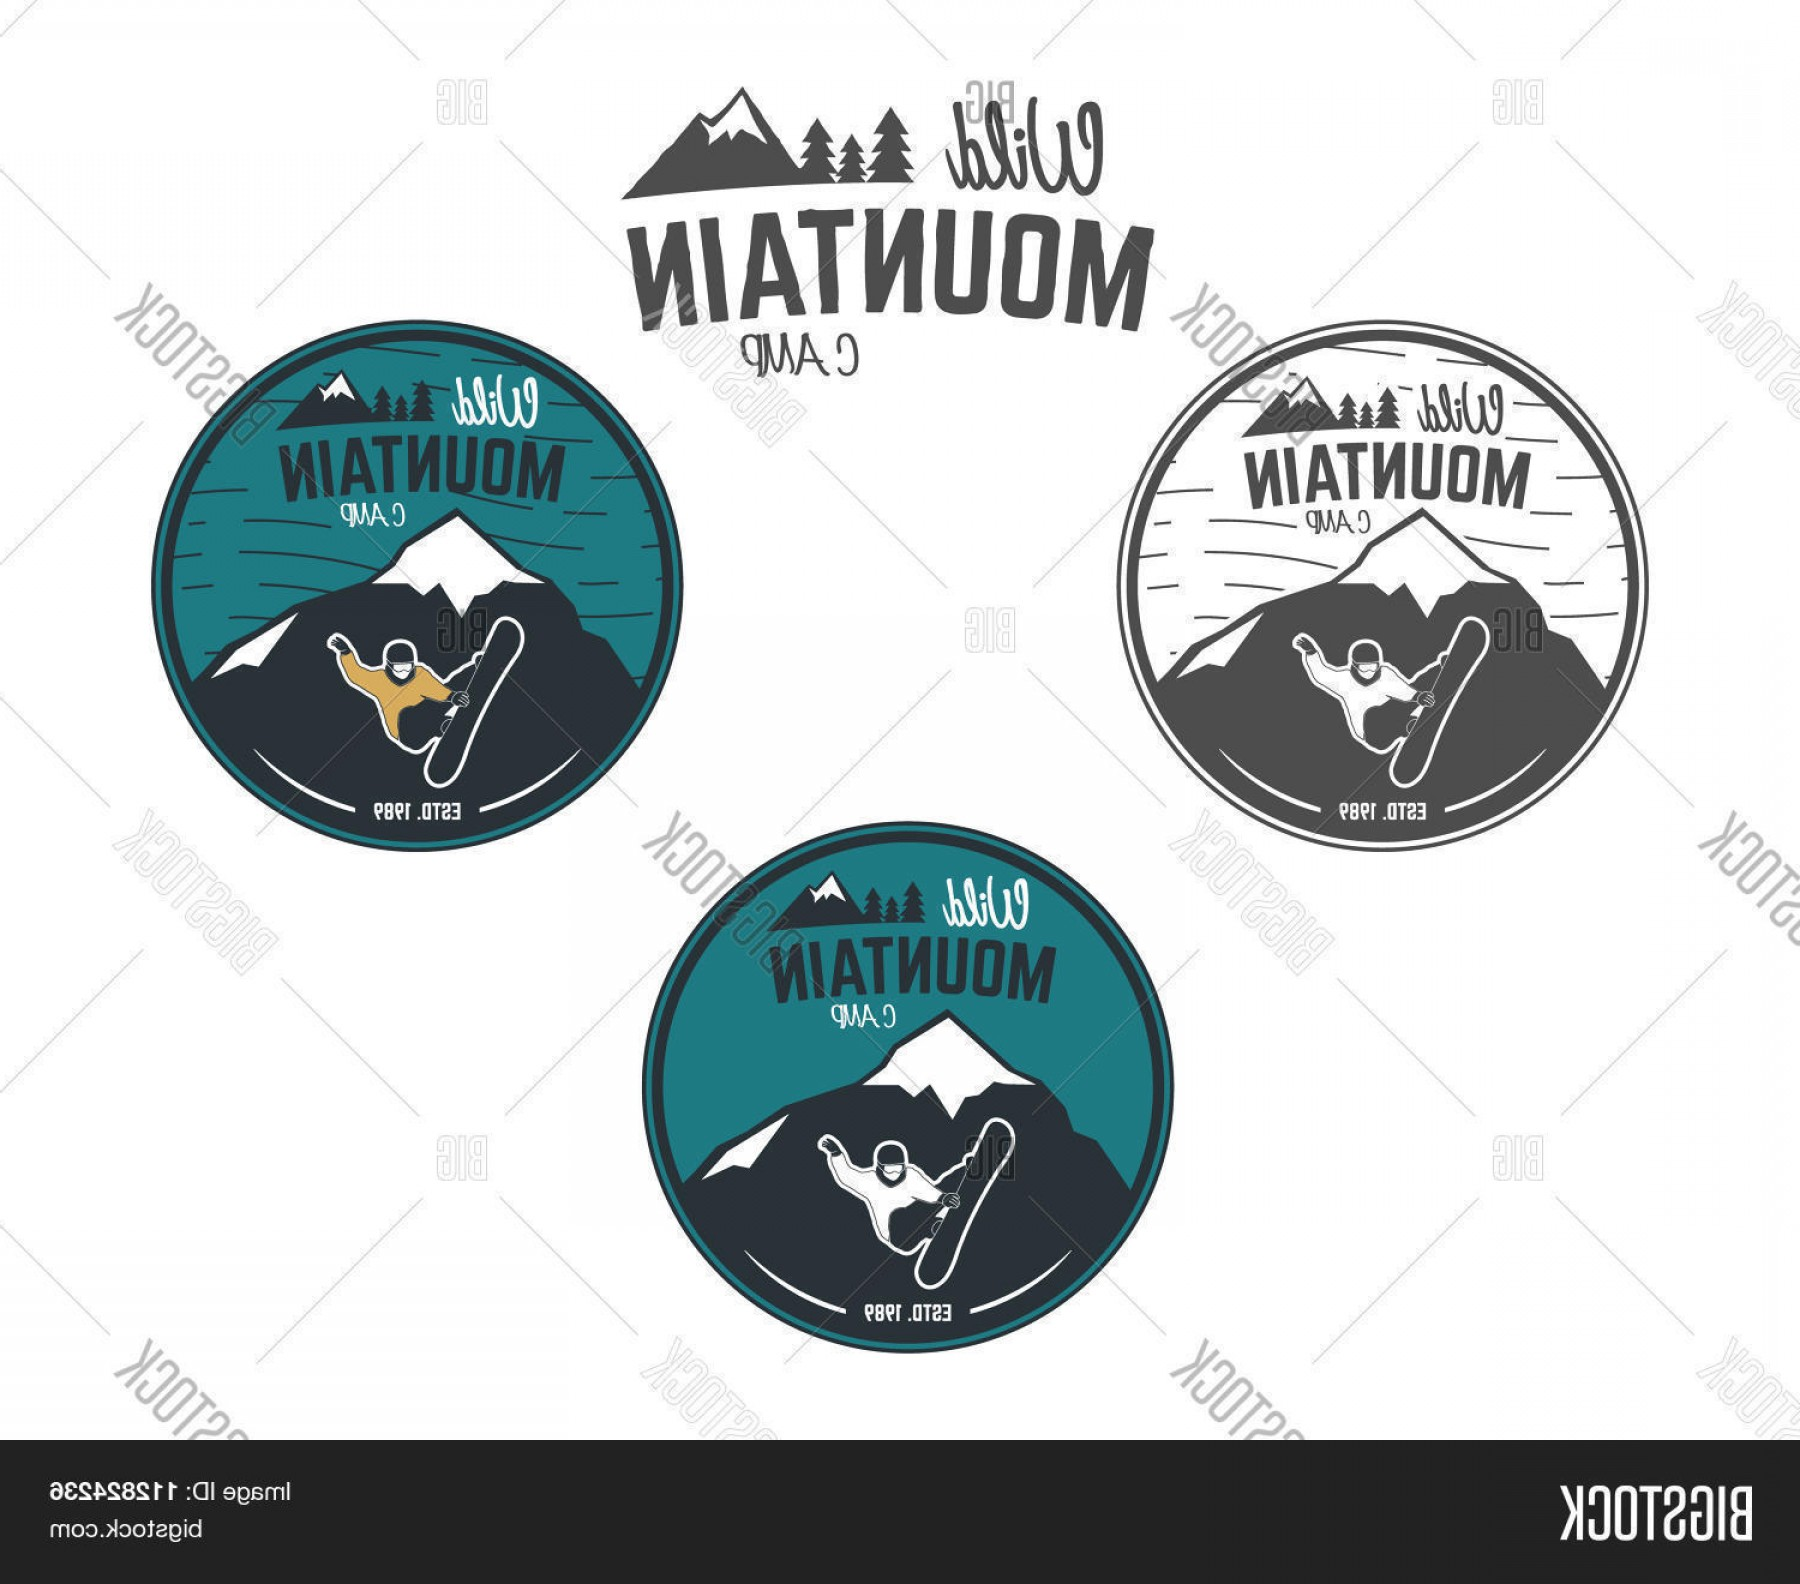 Hipster Logo Vectors Mountain: Stock Vector Set Of Mountain Winter Camp Vintage Explorer Labels Outdoor Adventure Logo Design Travel Hand Draw